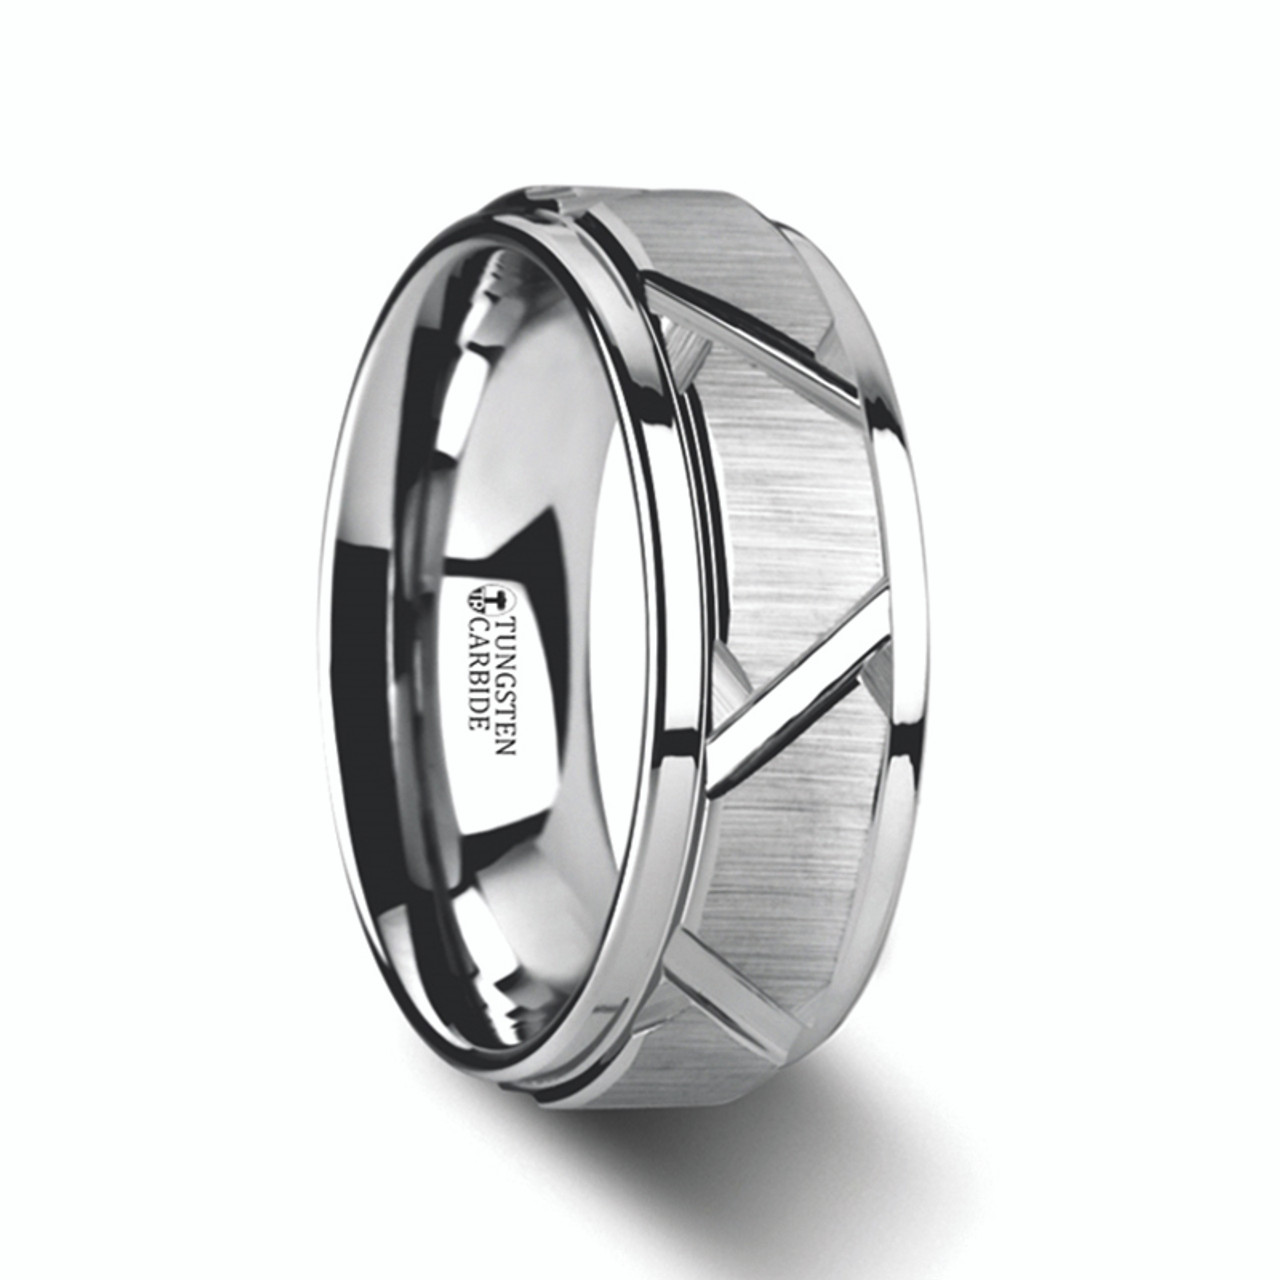 Mens Tungsten Wedding Bands.Men S Tungsten Ring With Angled Grooves And Raised Center